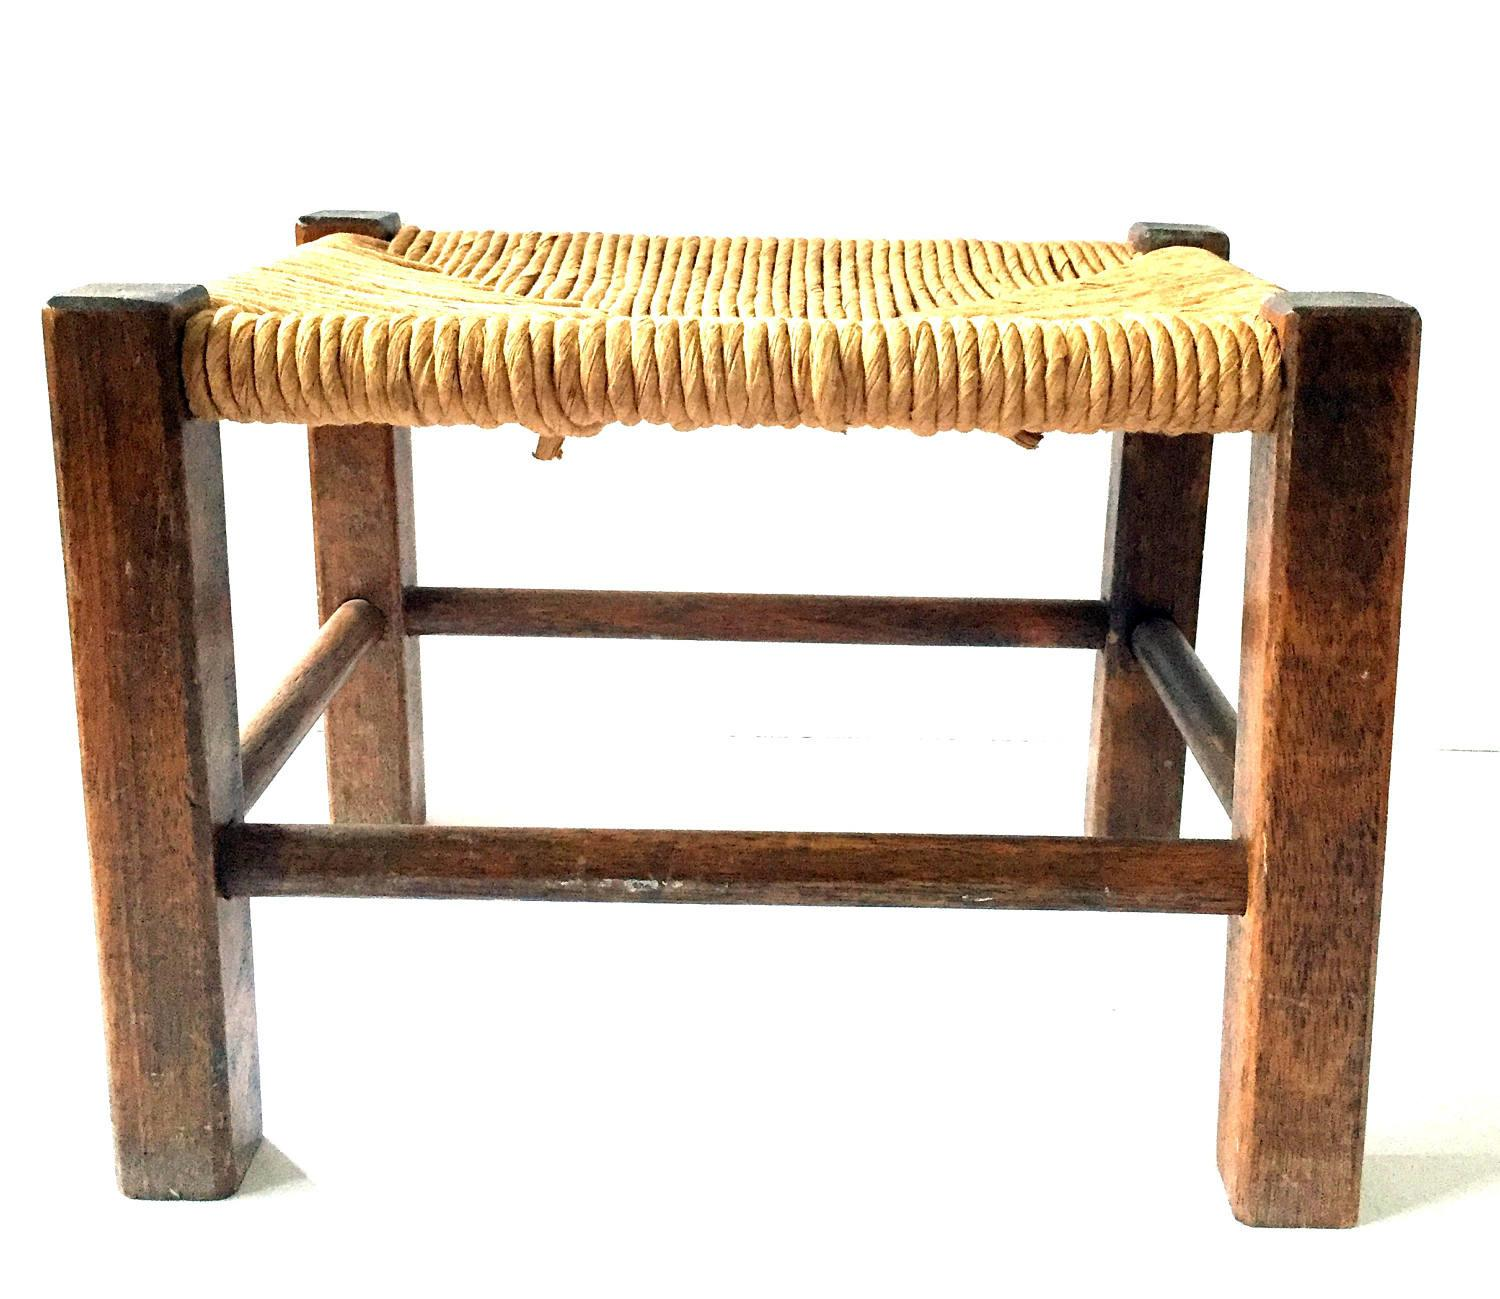 Adorable Antique Woven Rope Footstool